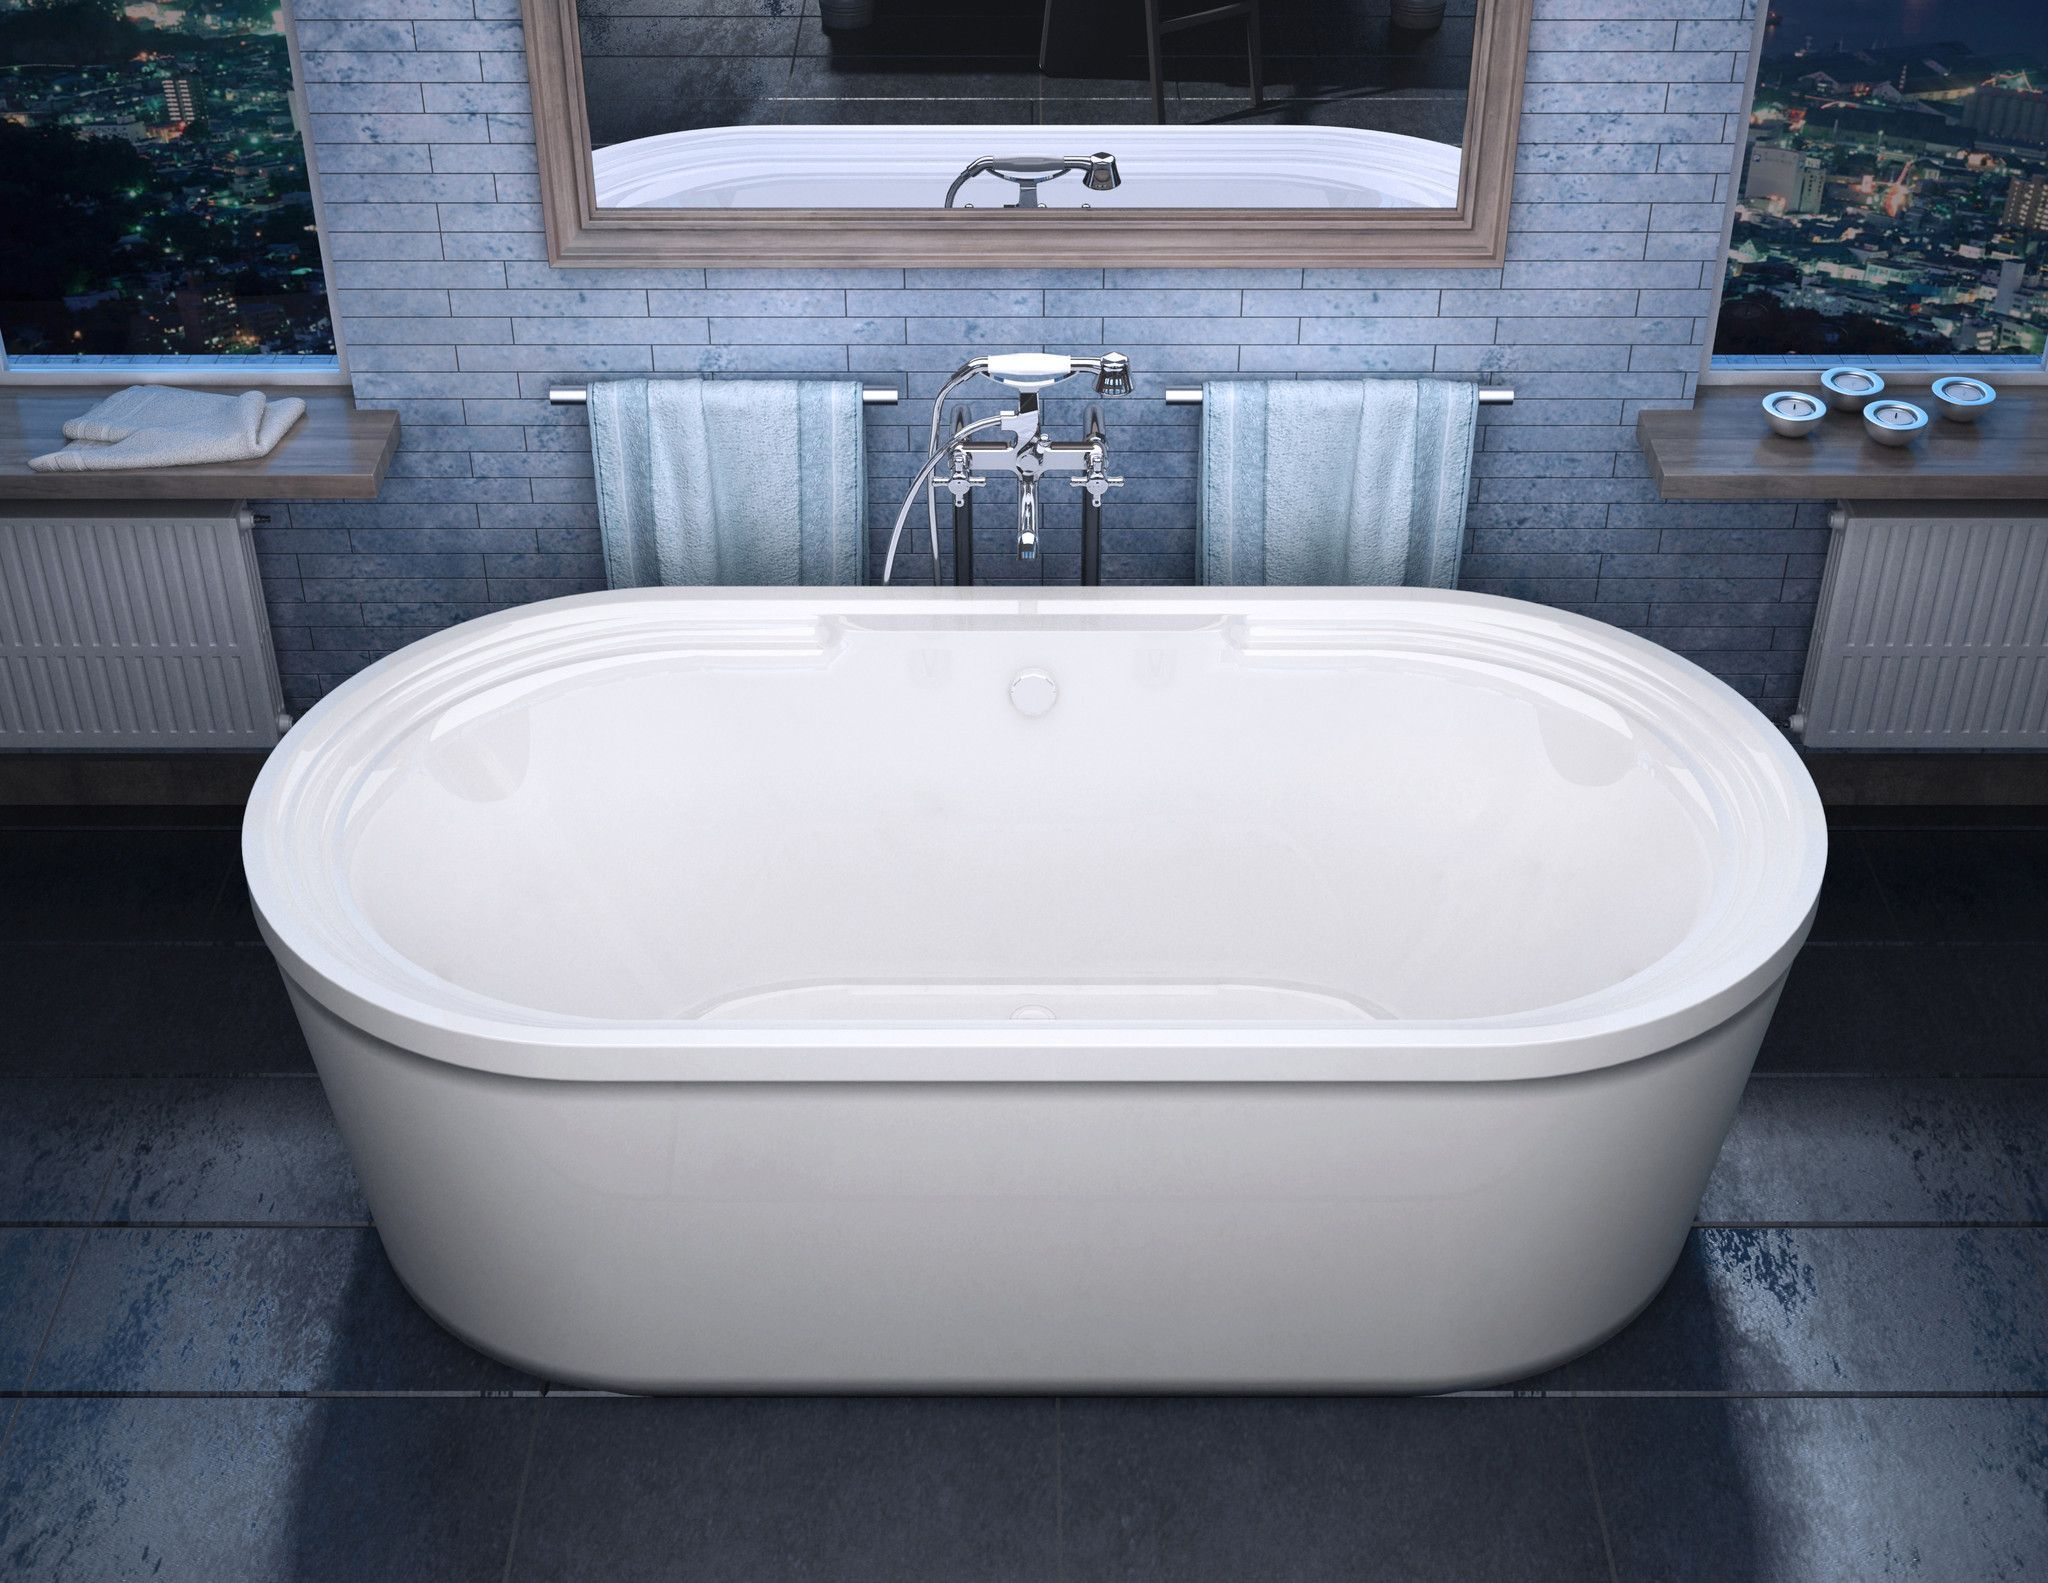 Atlantis Whirlpools 3467RS Royale 34 x 67 Oval Freestanding Soaker ...